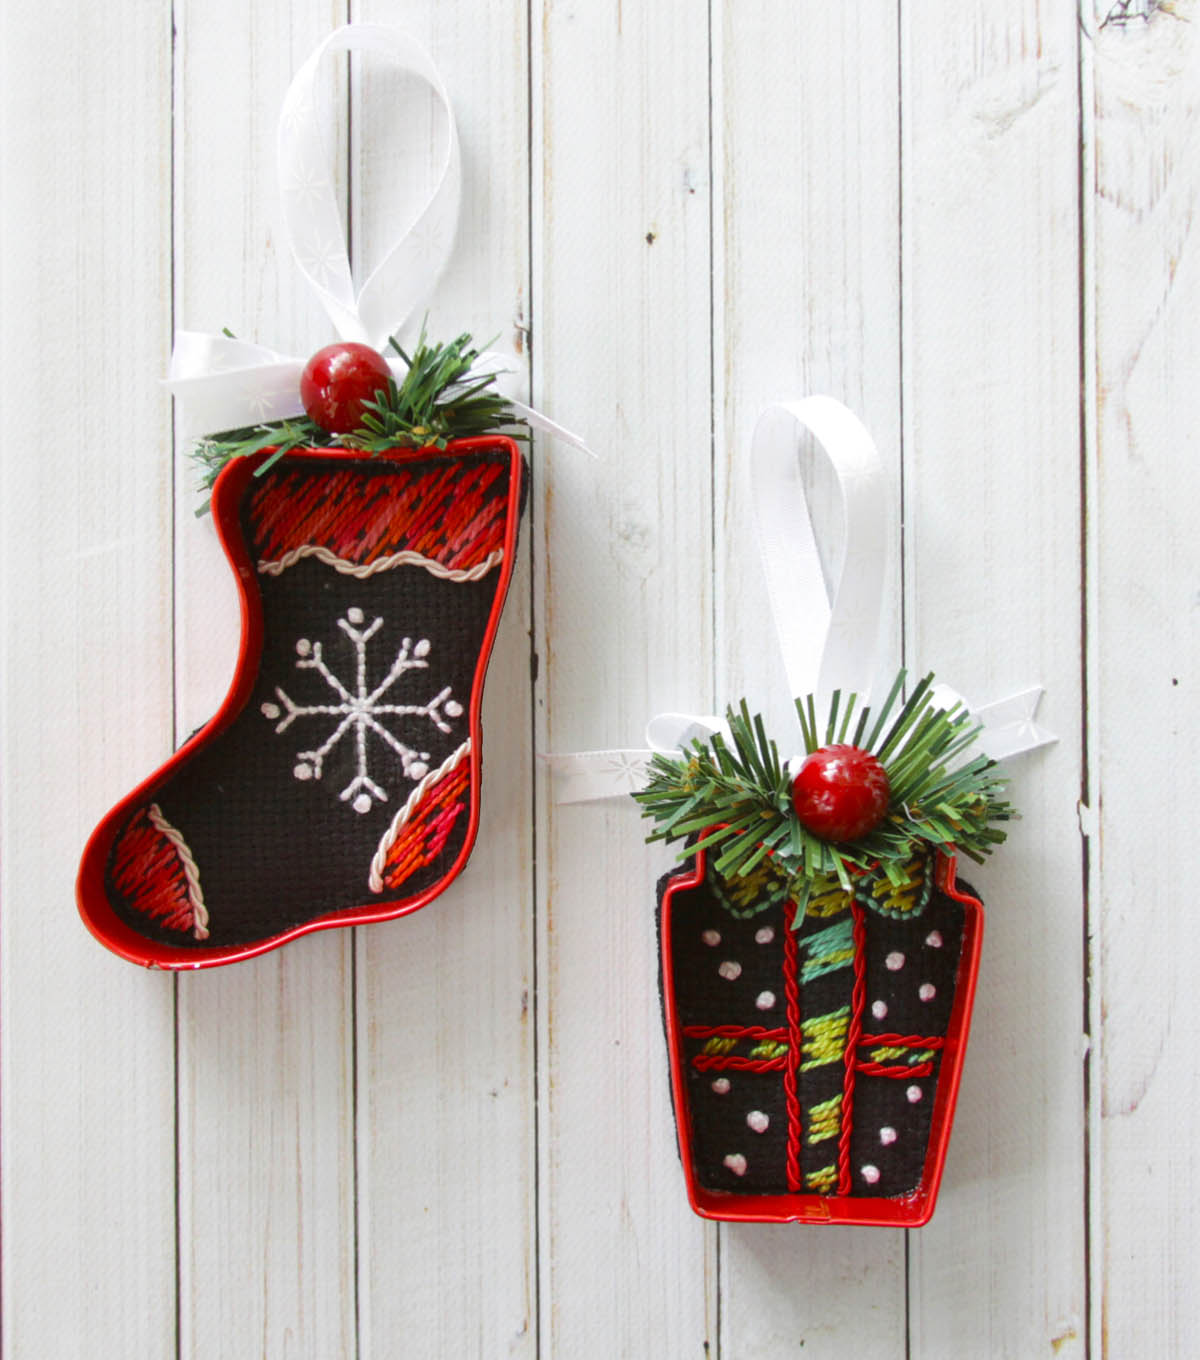 How To Make Cookie Cutter Needle Arts Ornaments Joann